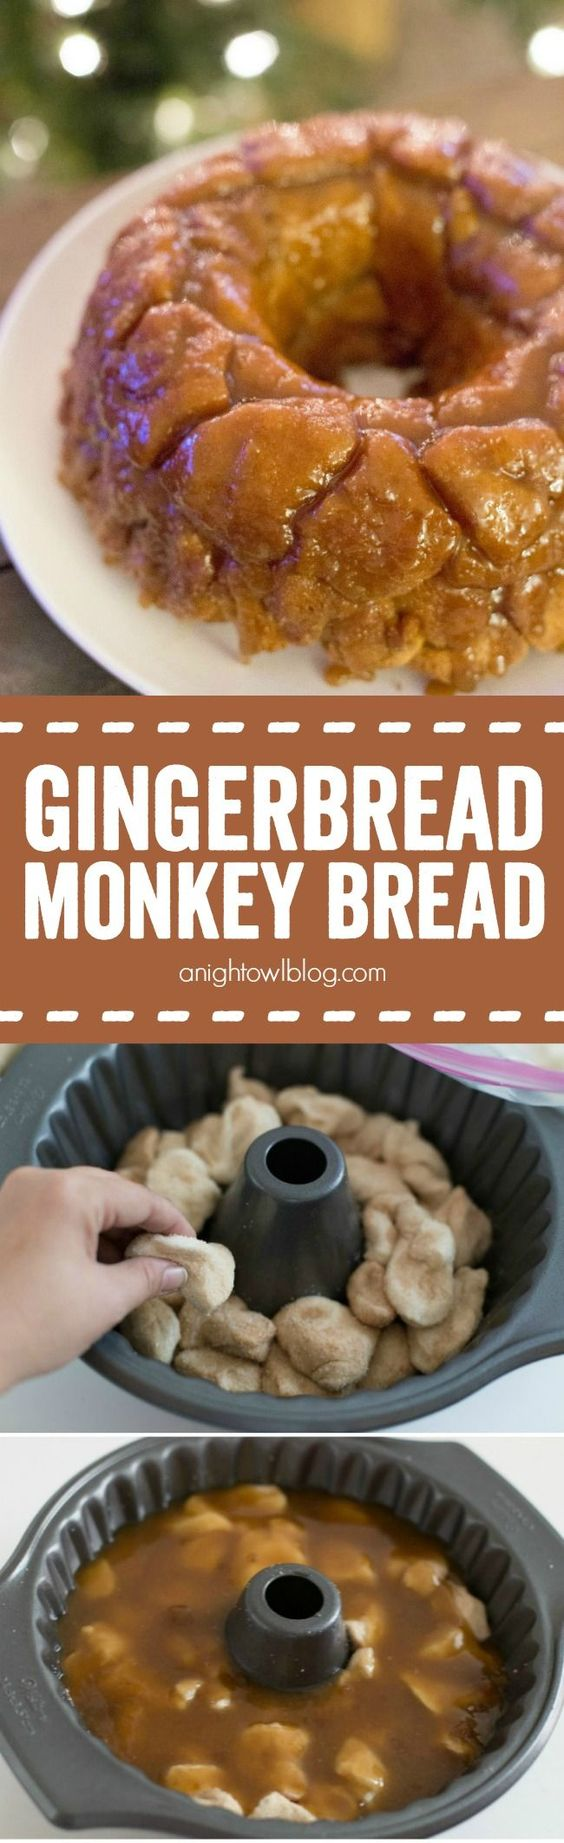 ... the monkey spices breakfast monkey bread gingerbread breads holiday